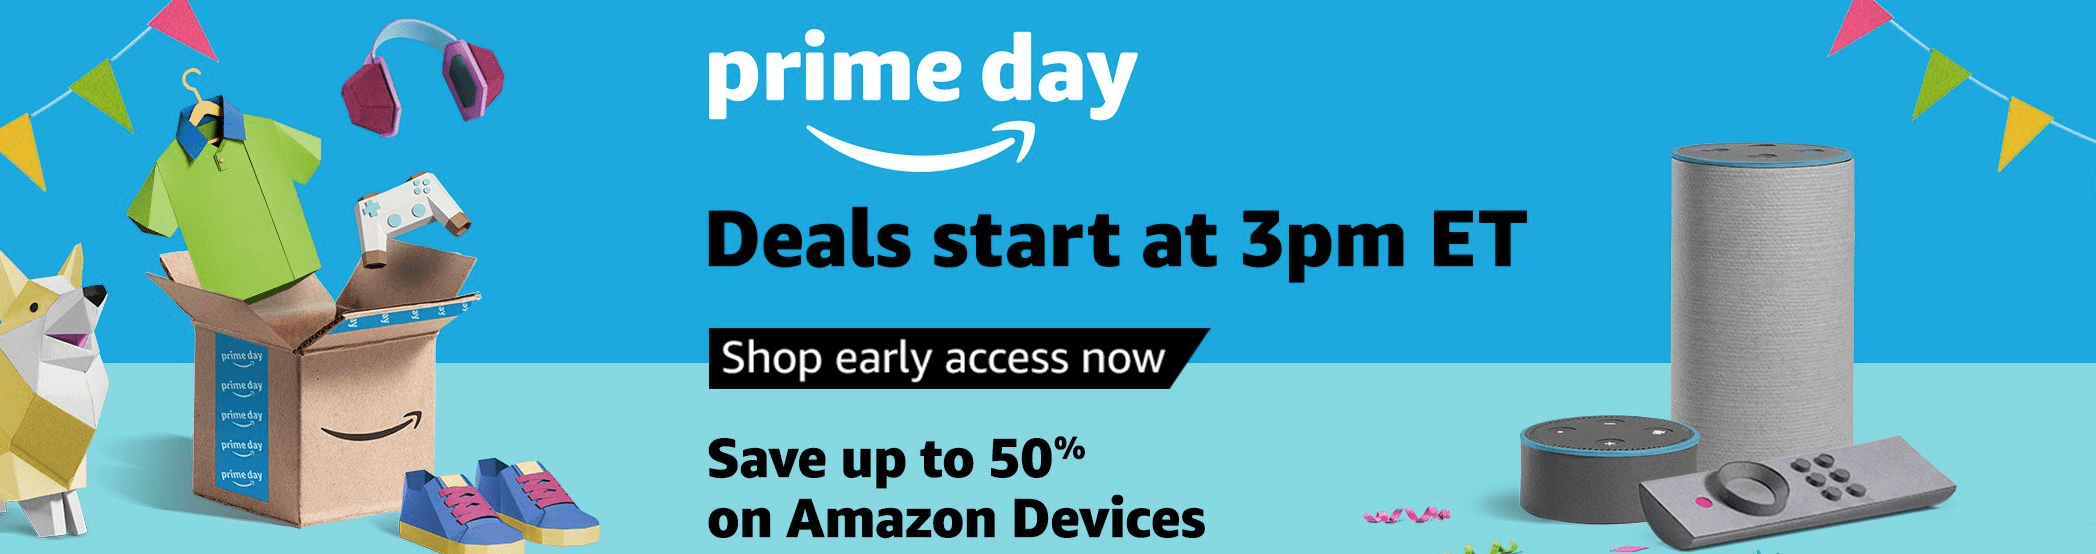 Christmas in July: Everything You Need to Know About Amazon Prime Day (including early deals!)